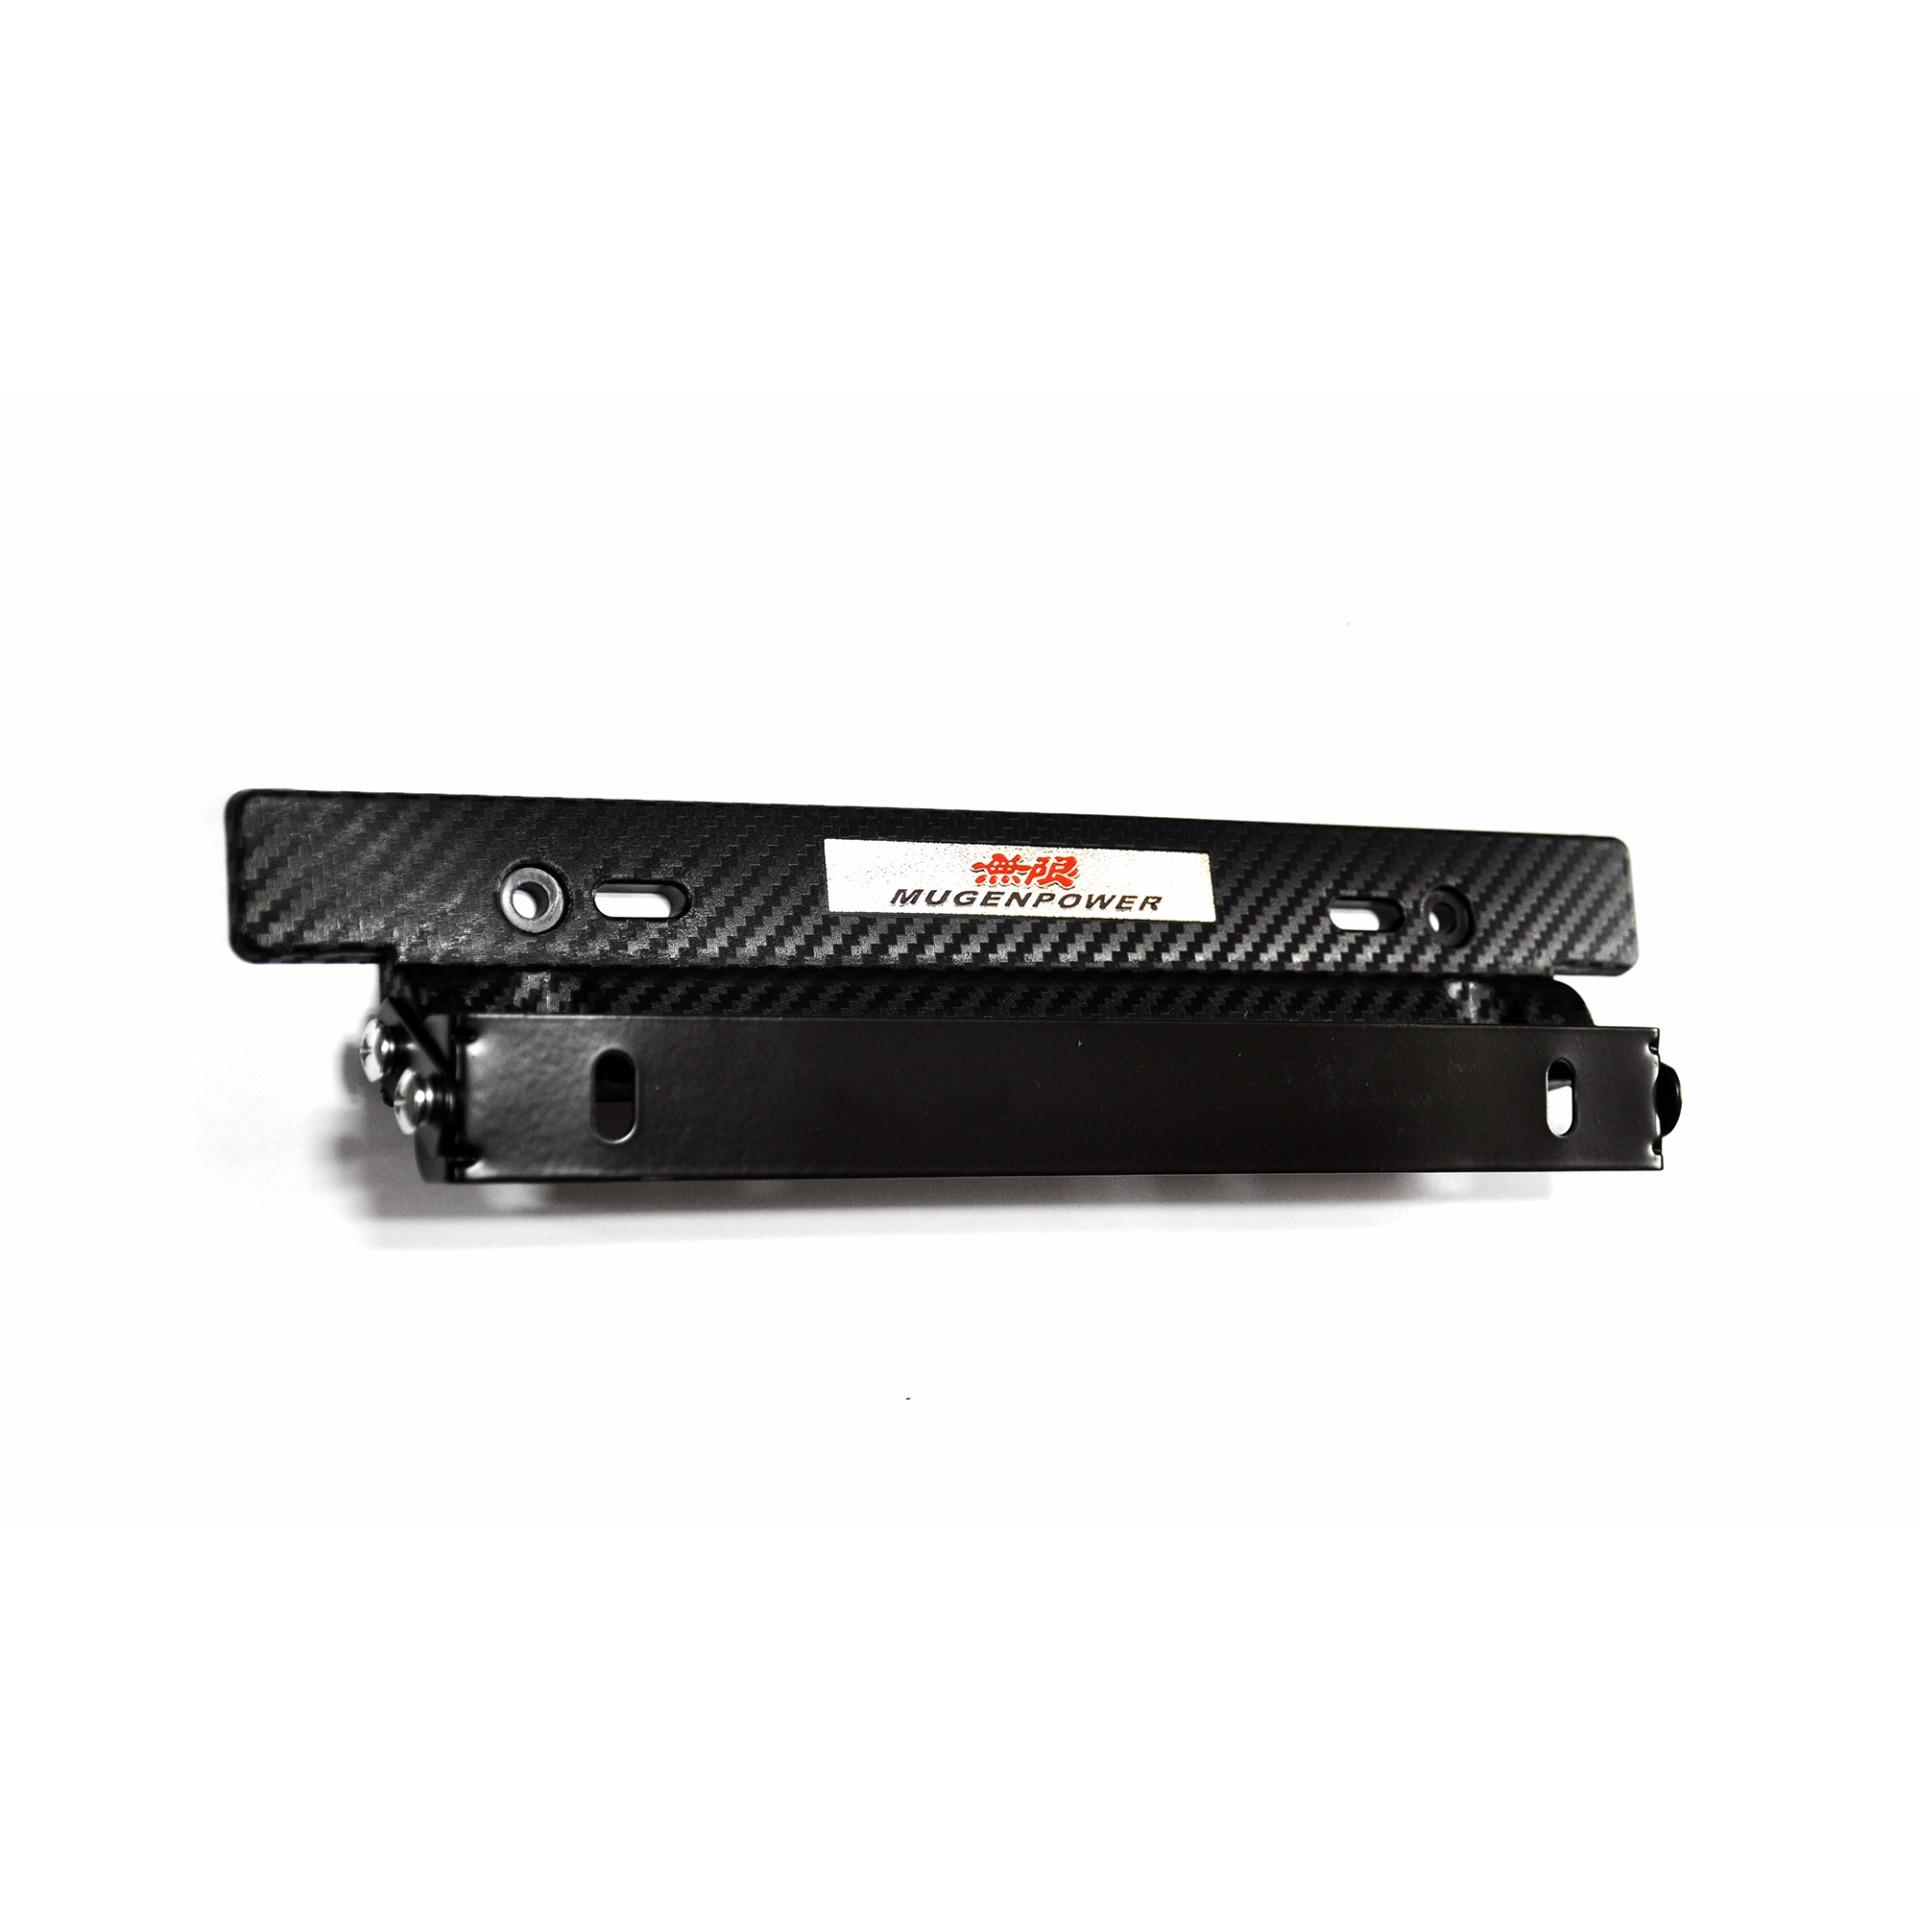 ... Mugen Power Tilting Car Plate Holder ...  sc 1 th 225 & Philippines | Mugen Power Tilting Car Plate Holder Compare Prices